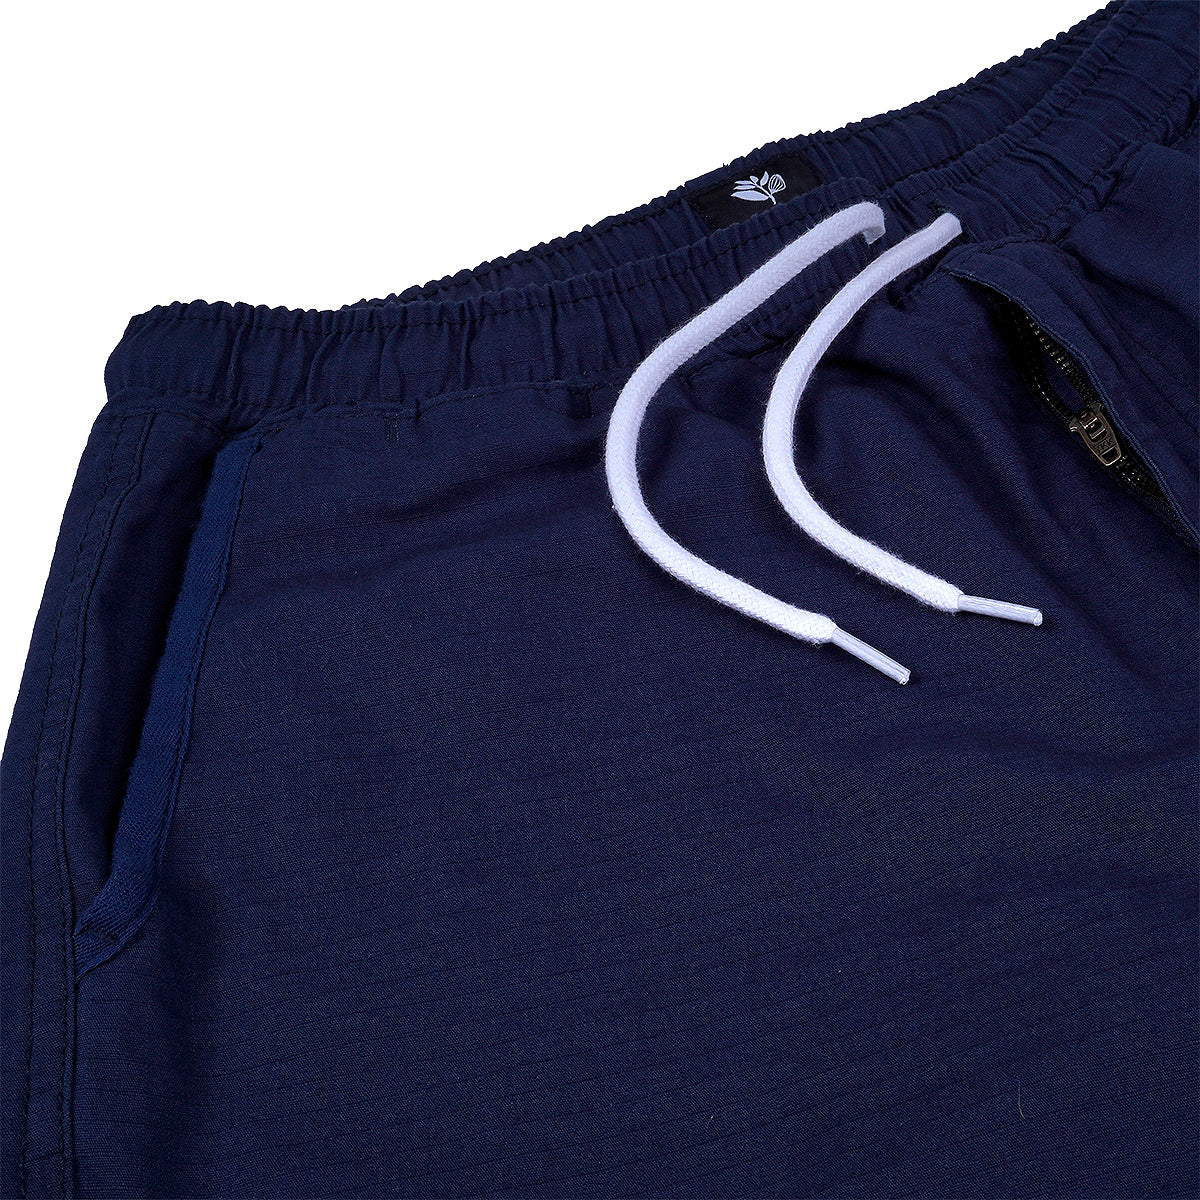 "MAGENTA SKATEBOARDS - Comfy Cargo Pants ""Lipstop Navy"""